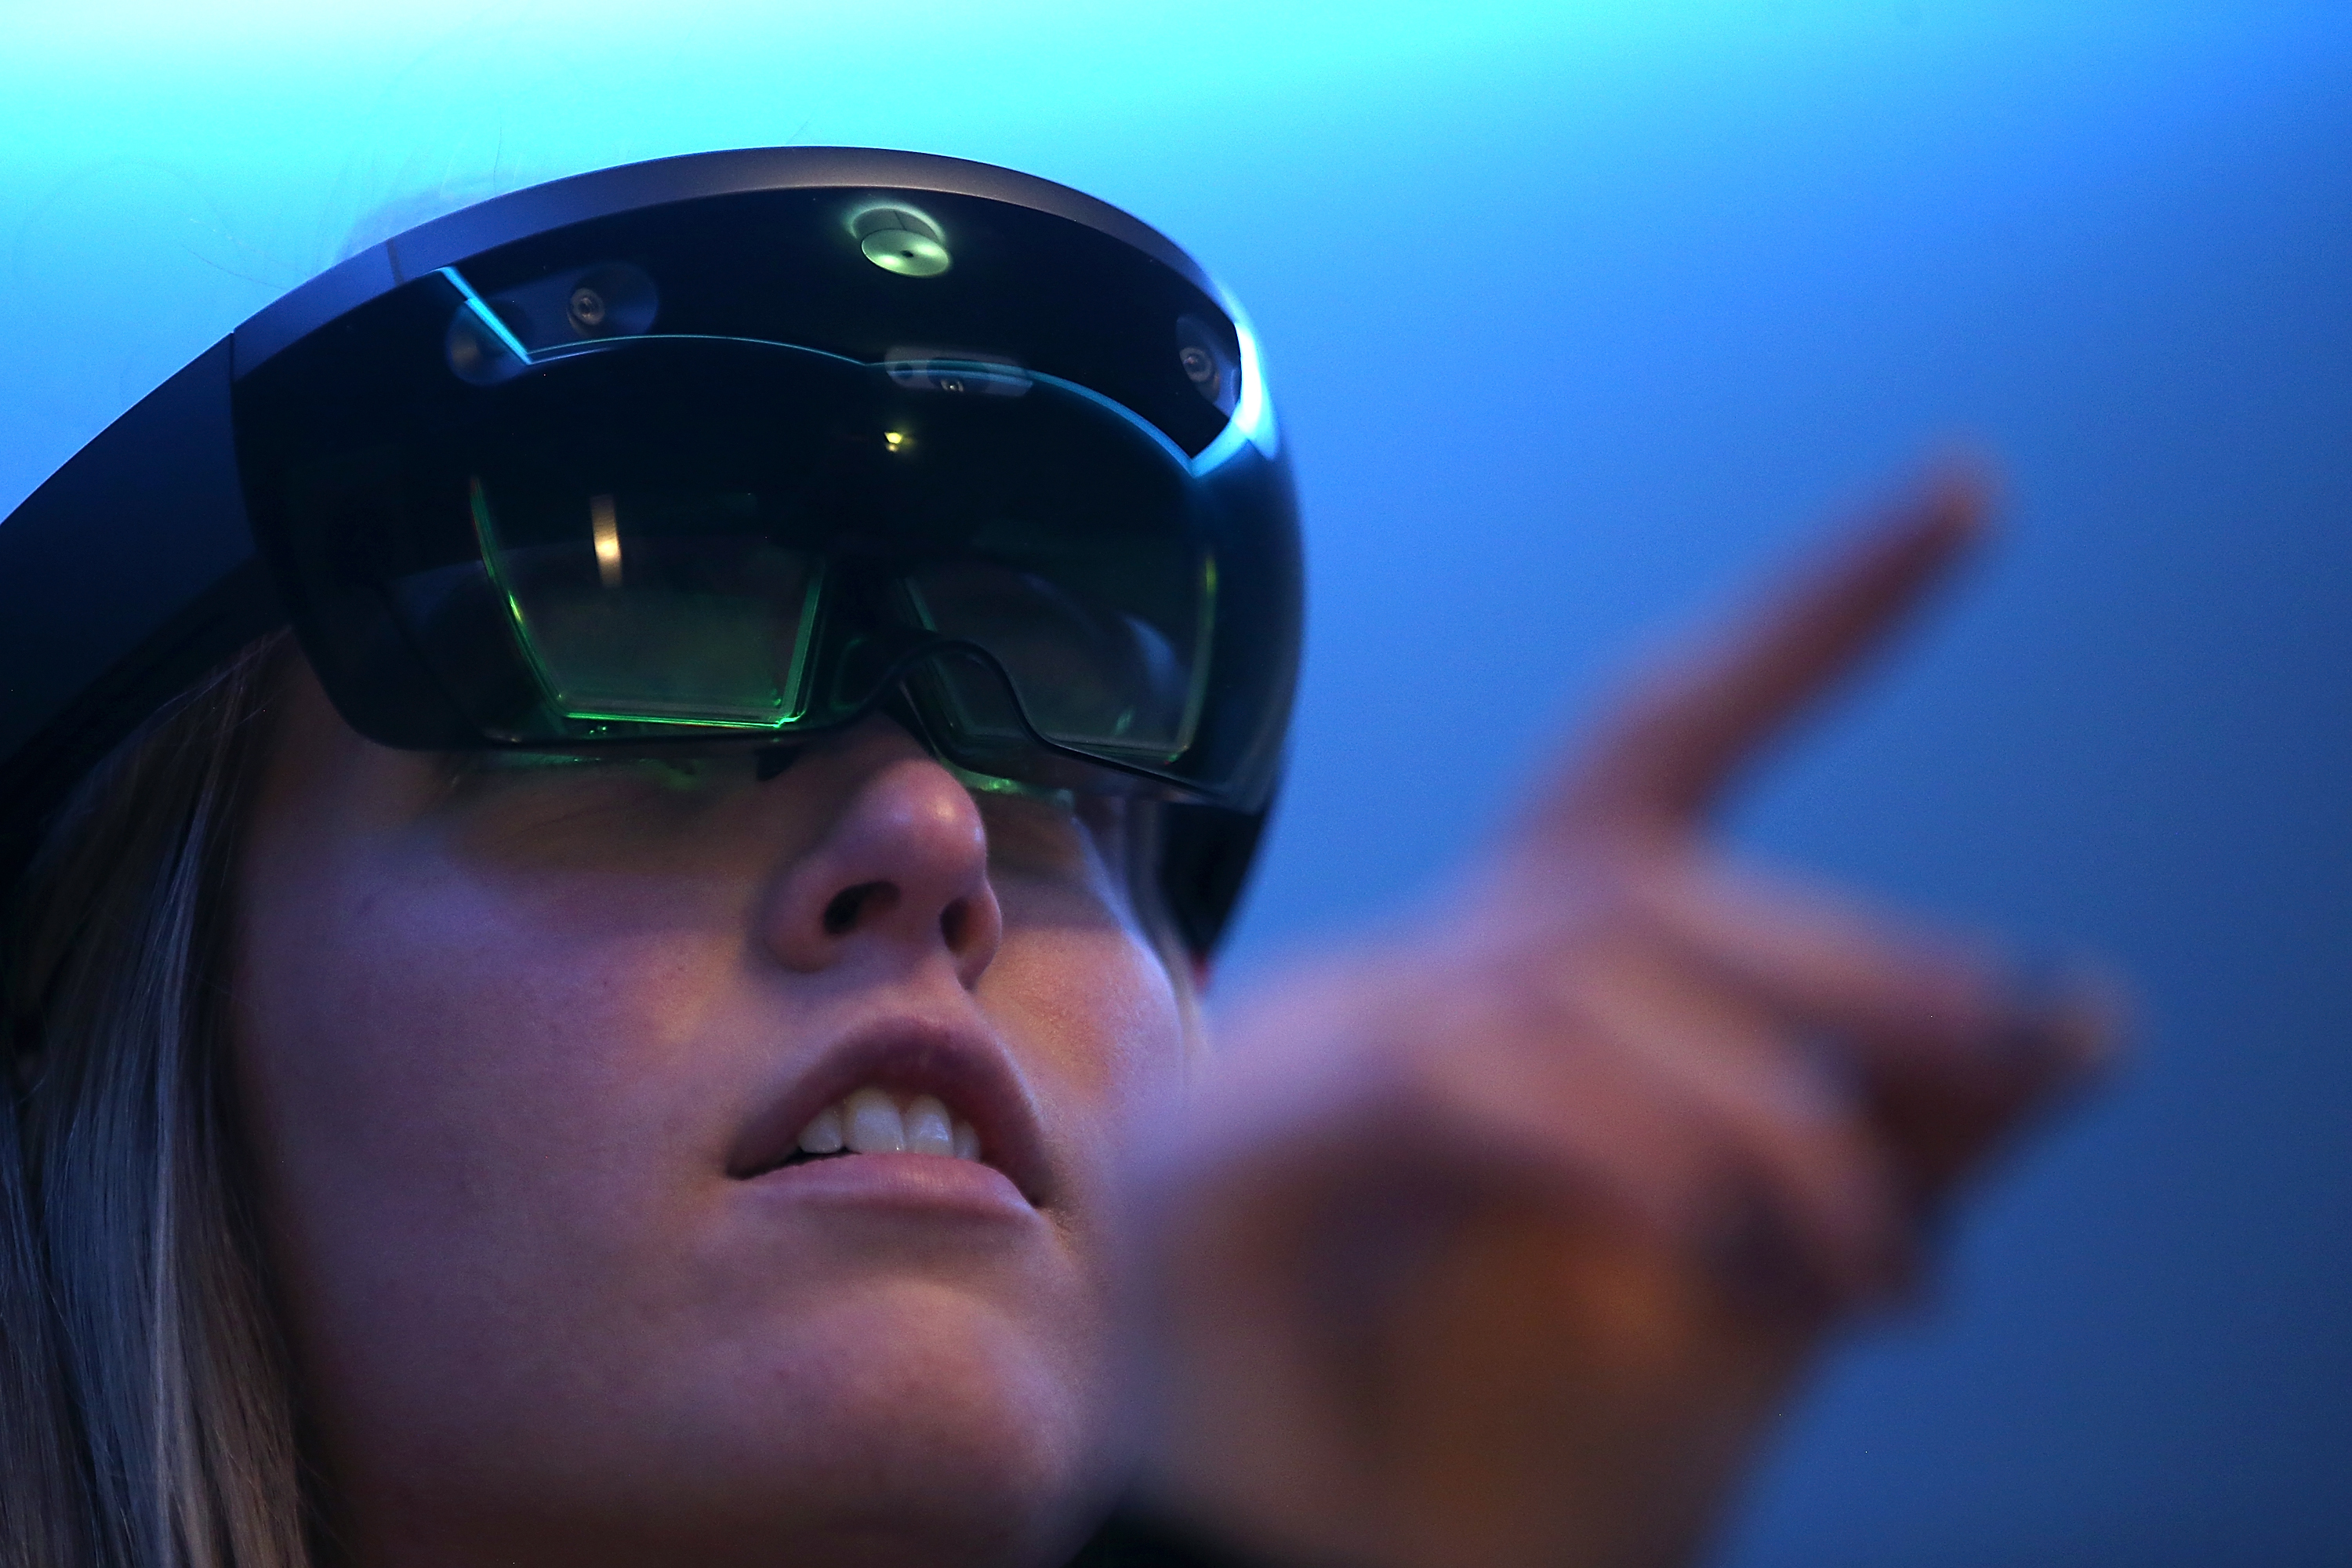 To view virtual reality, users have to use headsets like Microsoft's HoloLens.